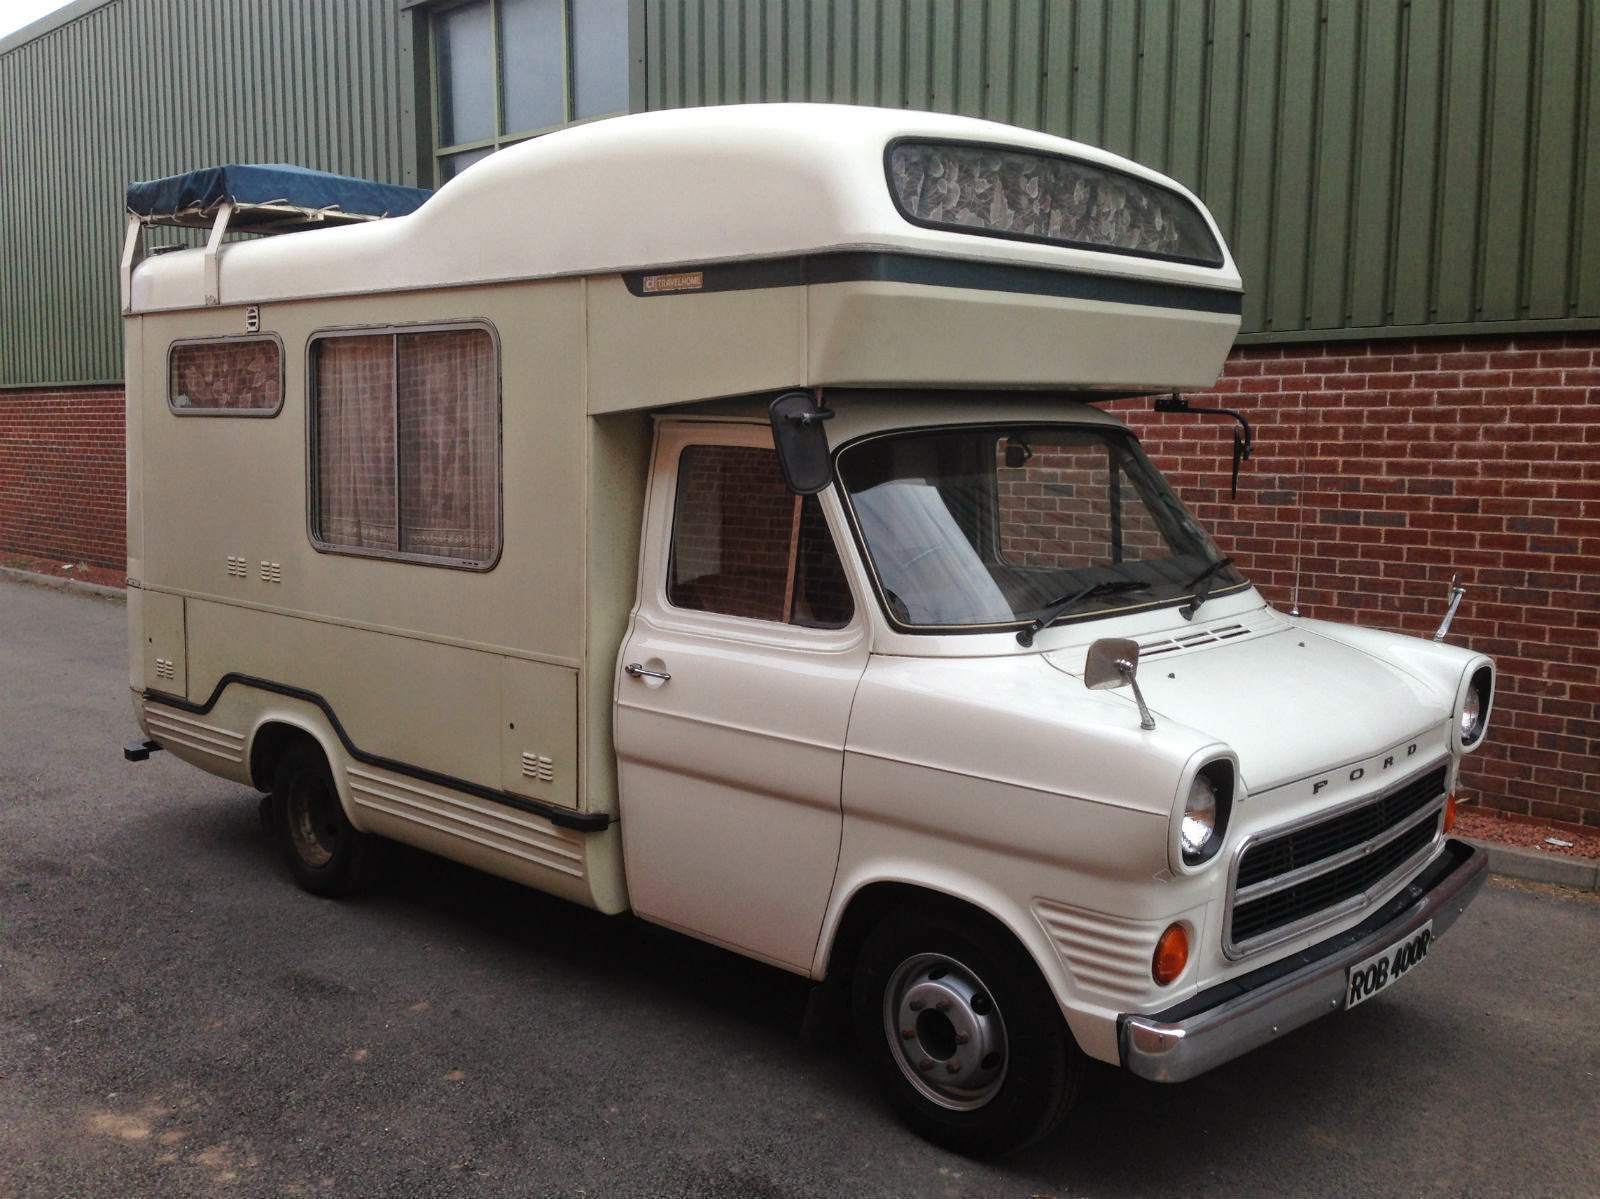 used rvs 1977 ford transit mk1 camper motorhome for sale by owner. Black Bedroom Furniture Sets. Home Design Ideas